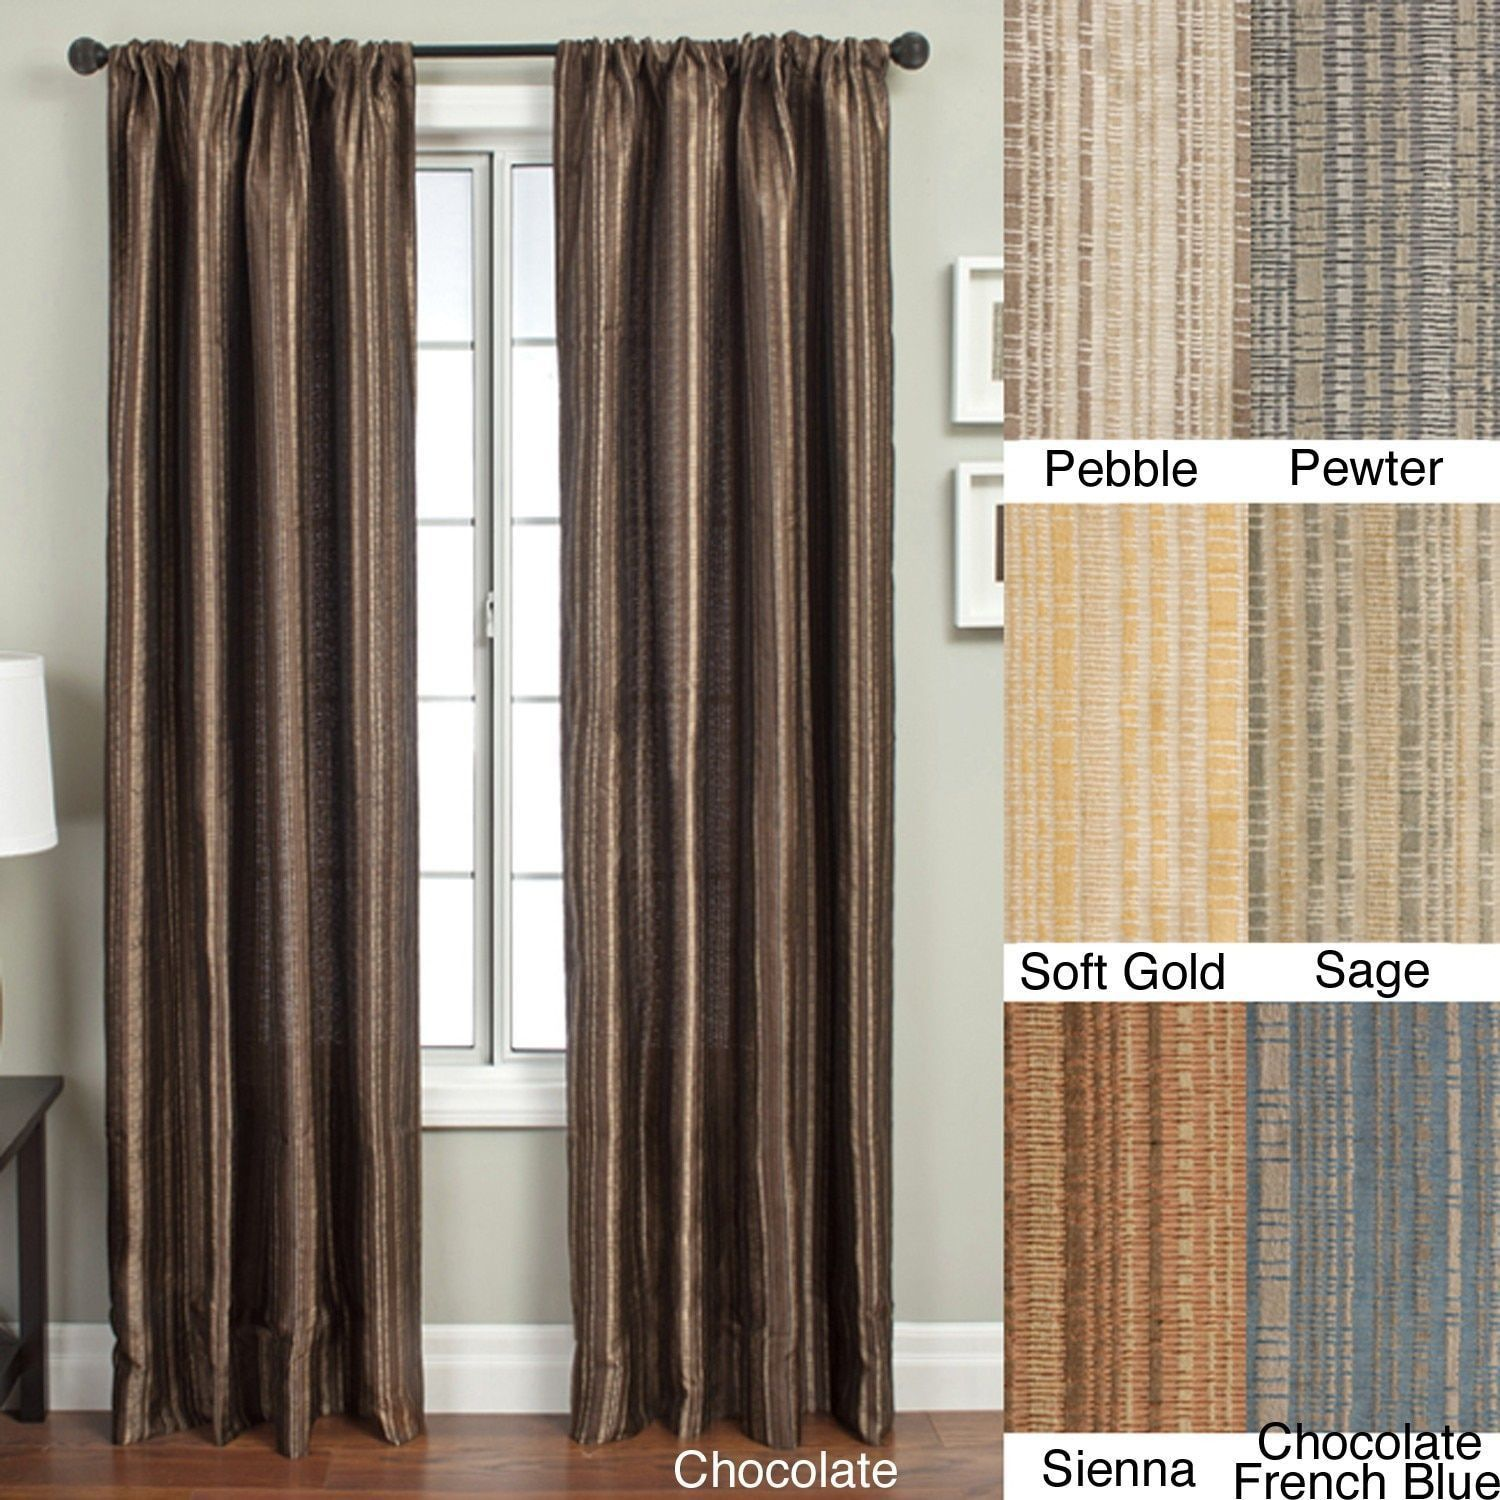 19 Cute Curtain Rods 120 Long Panel Curtains Curtains 96 Inch